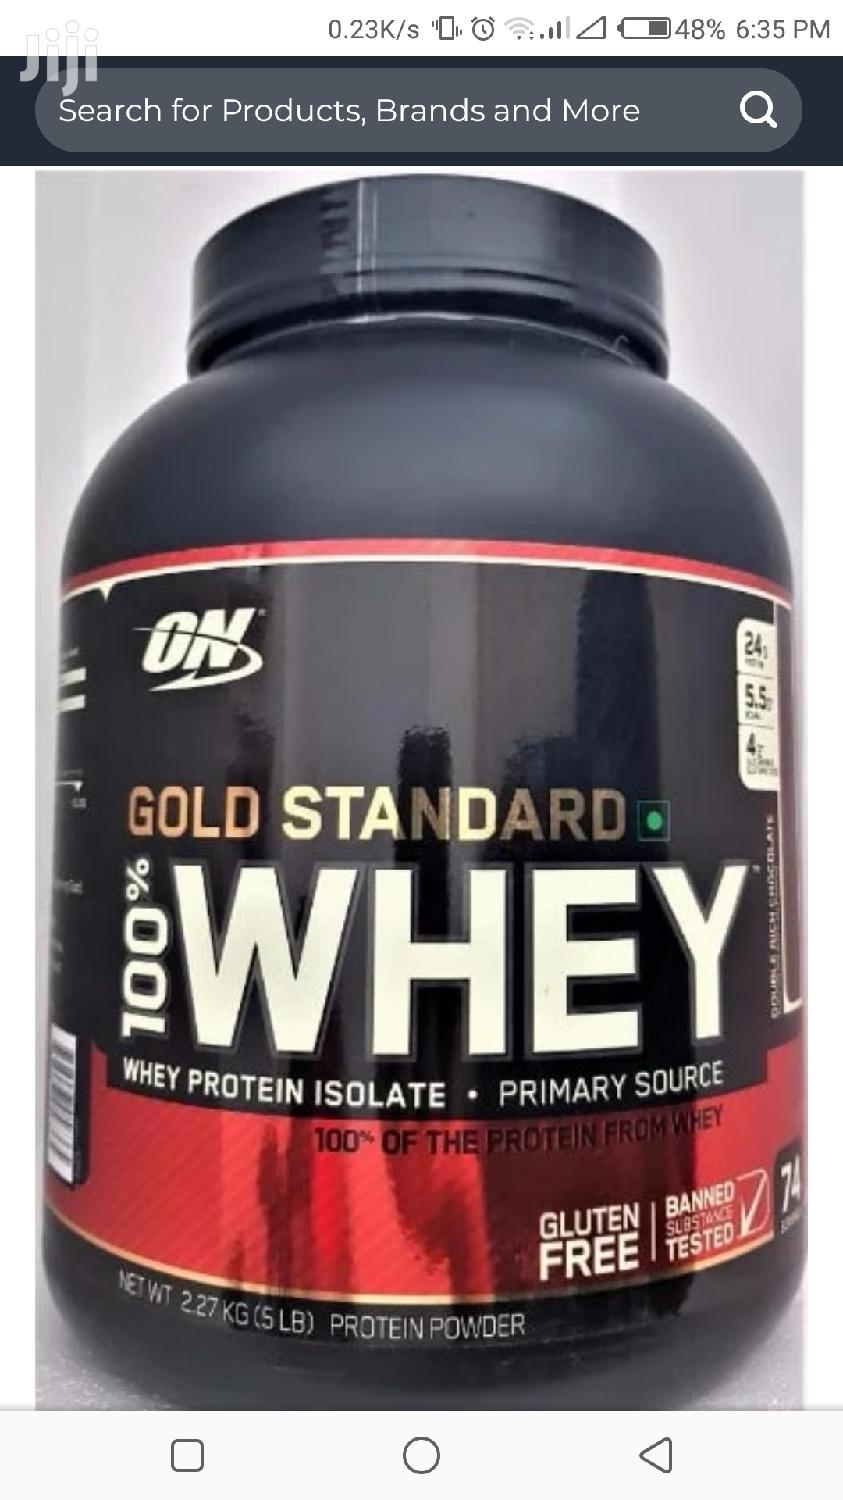 Archive: On Gold Standard 100% Whey